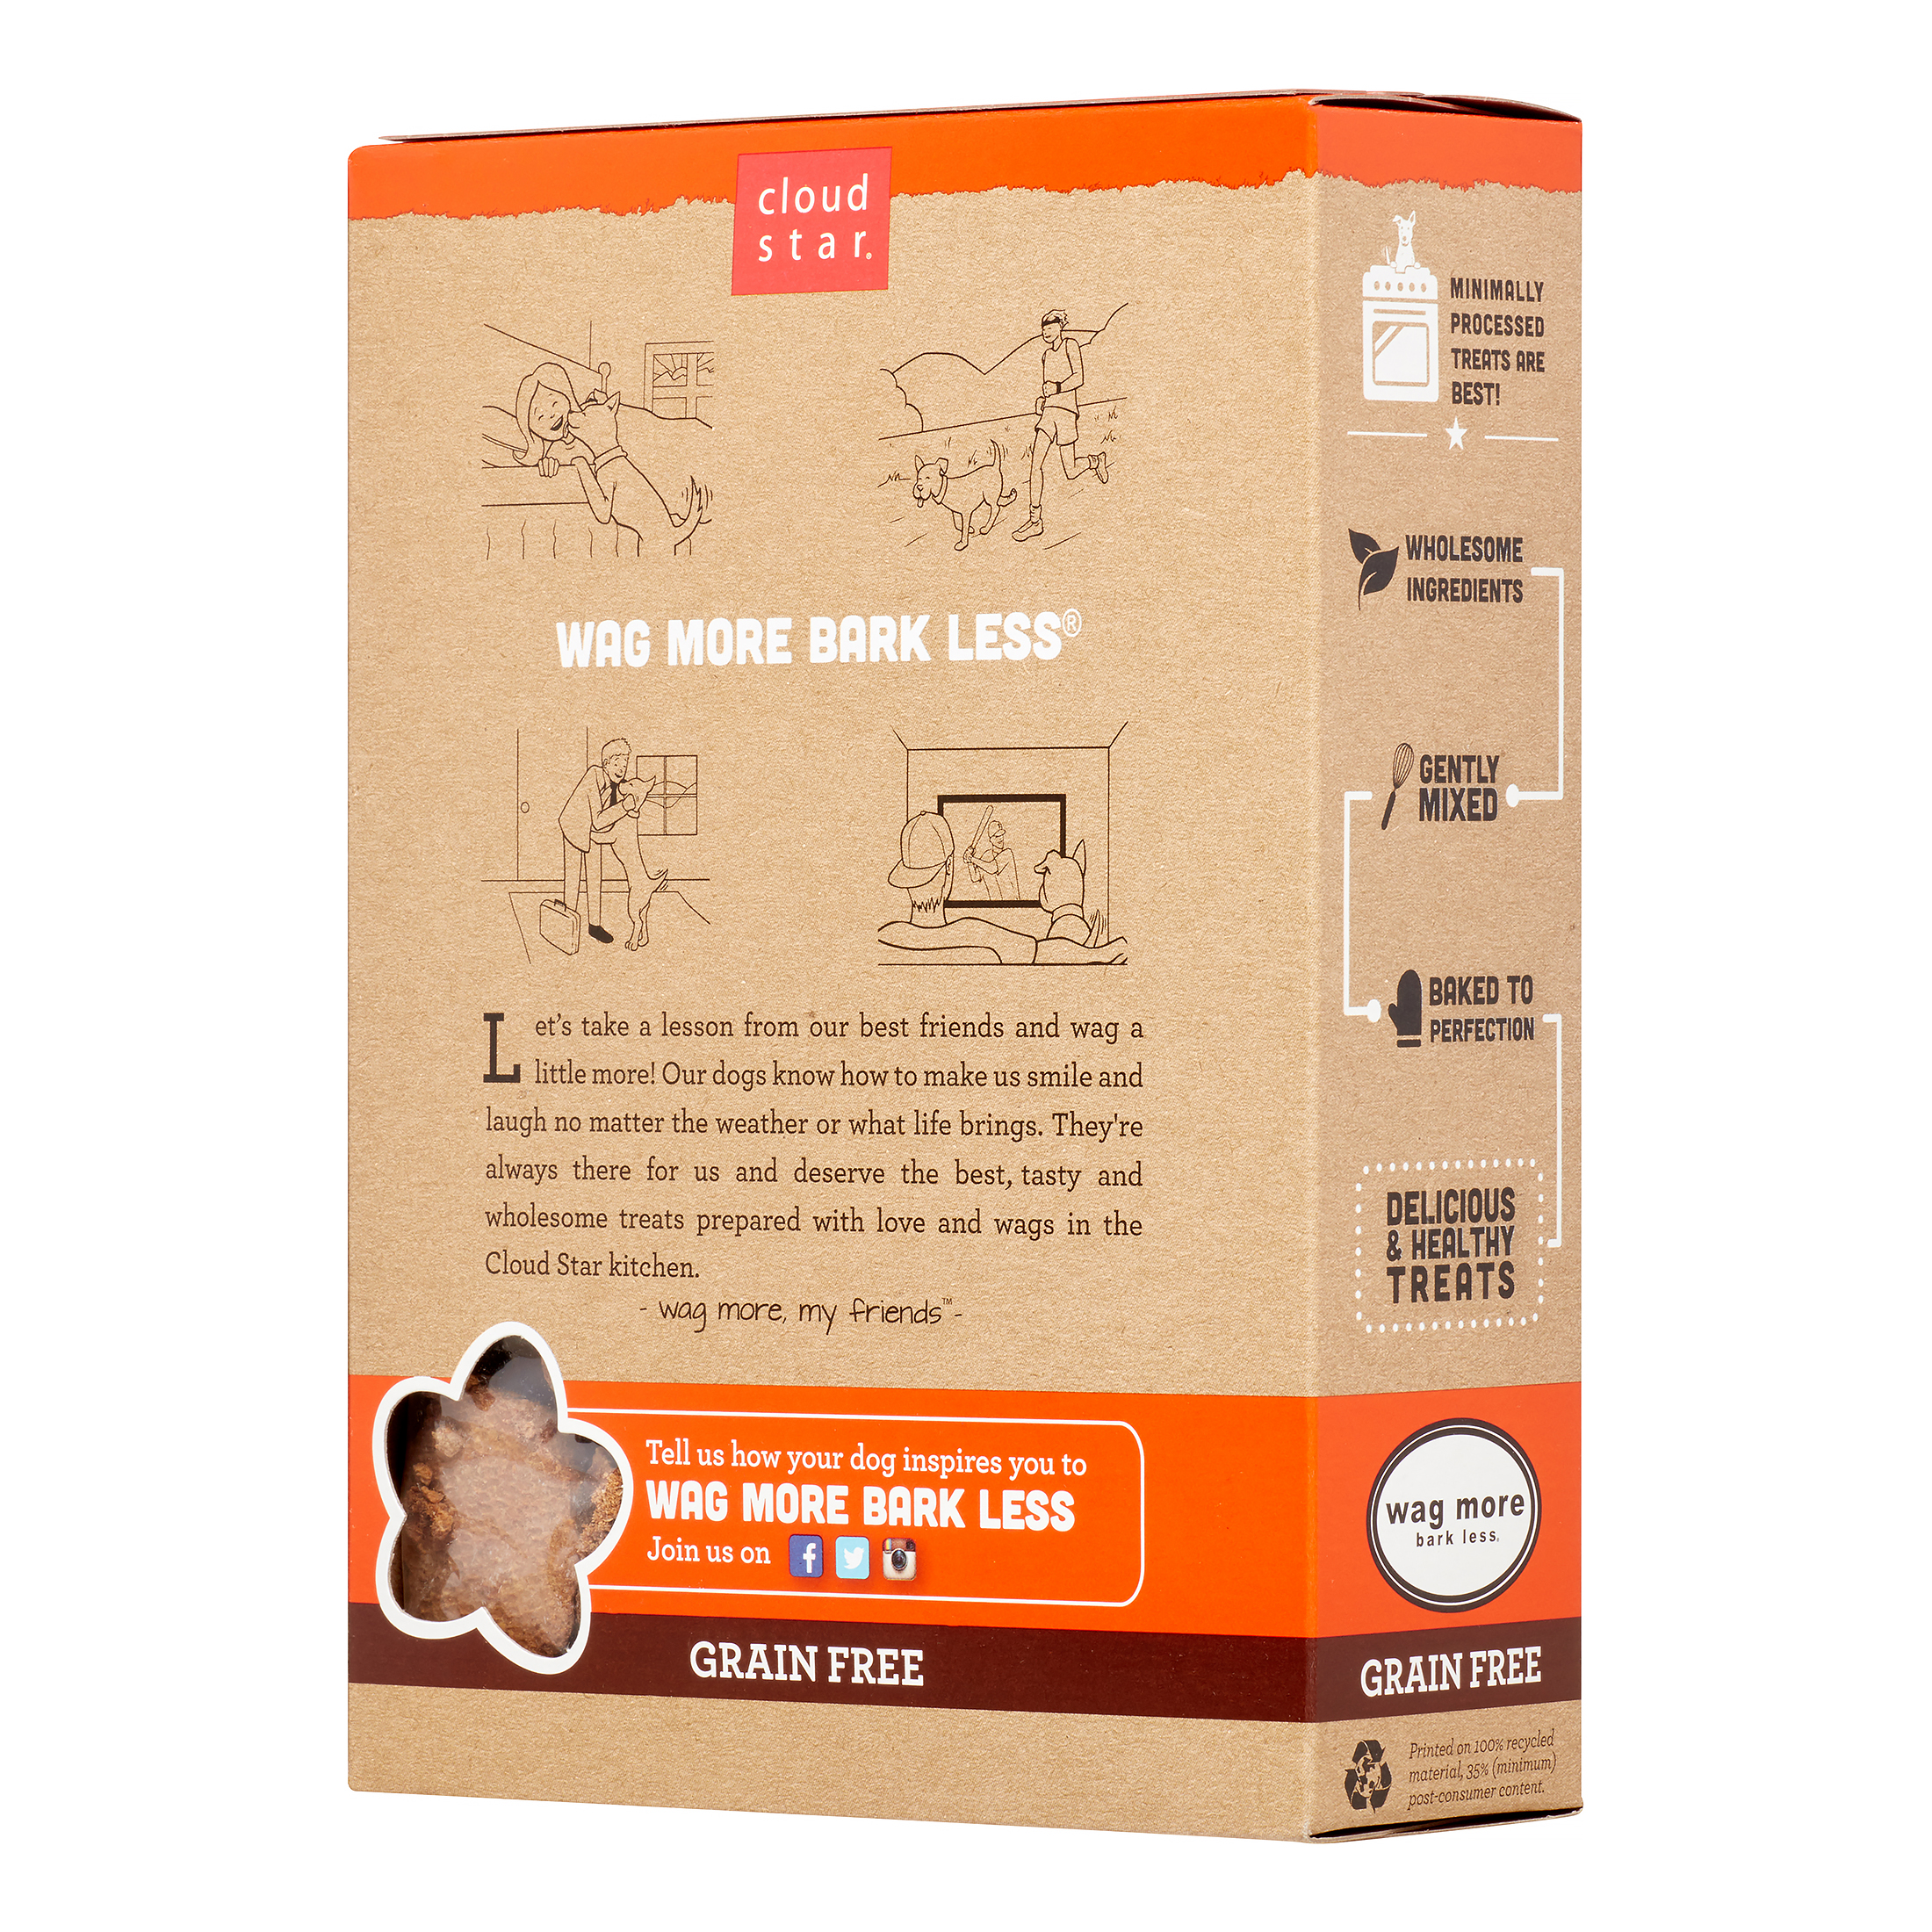 Cloud Star Wag More Bark Less Oven Baked Biscuits Grain-Free Peanut Butter & Apples Dry Dog Treat, 14 oz